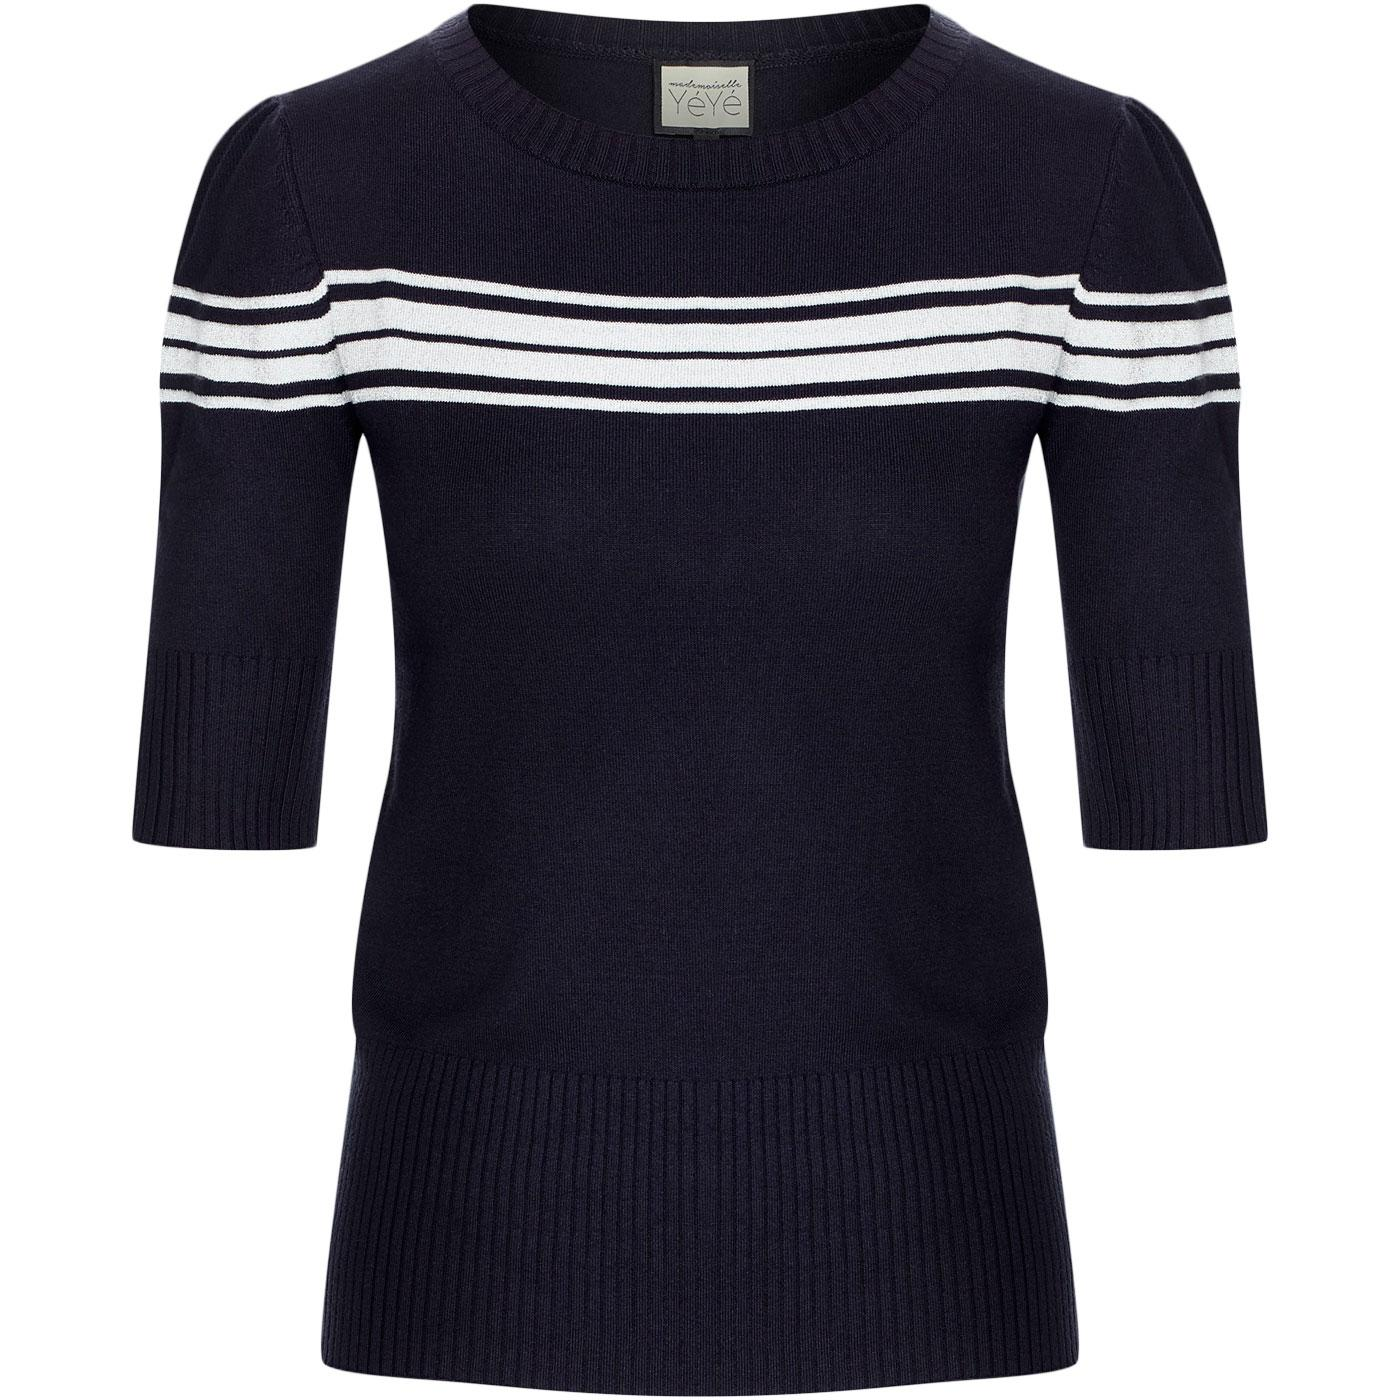 I Got Stripes MADEMOISELLE YEYE Knitted Top NAVY